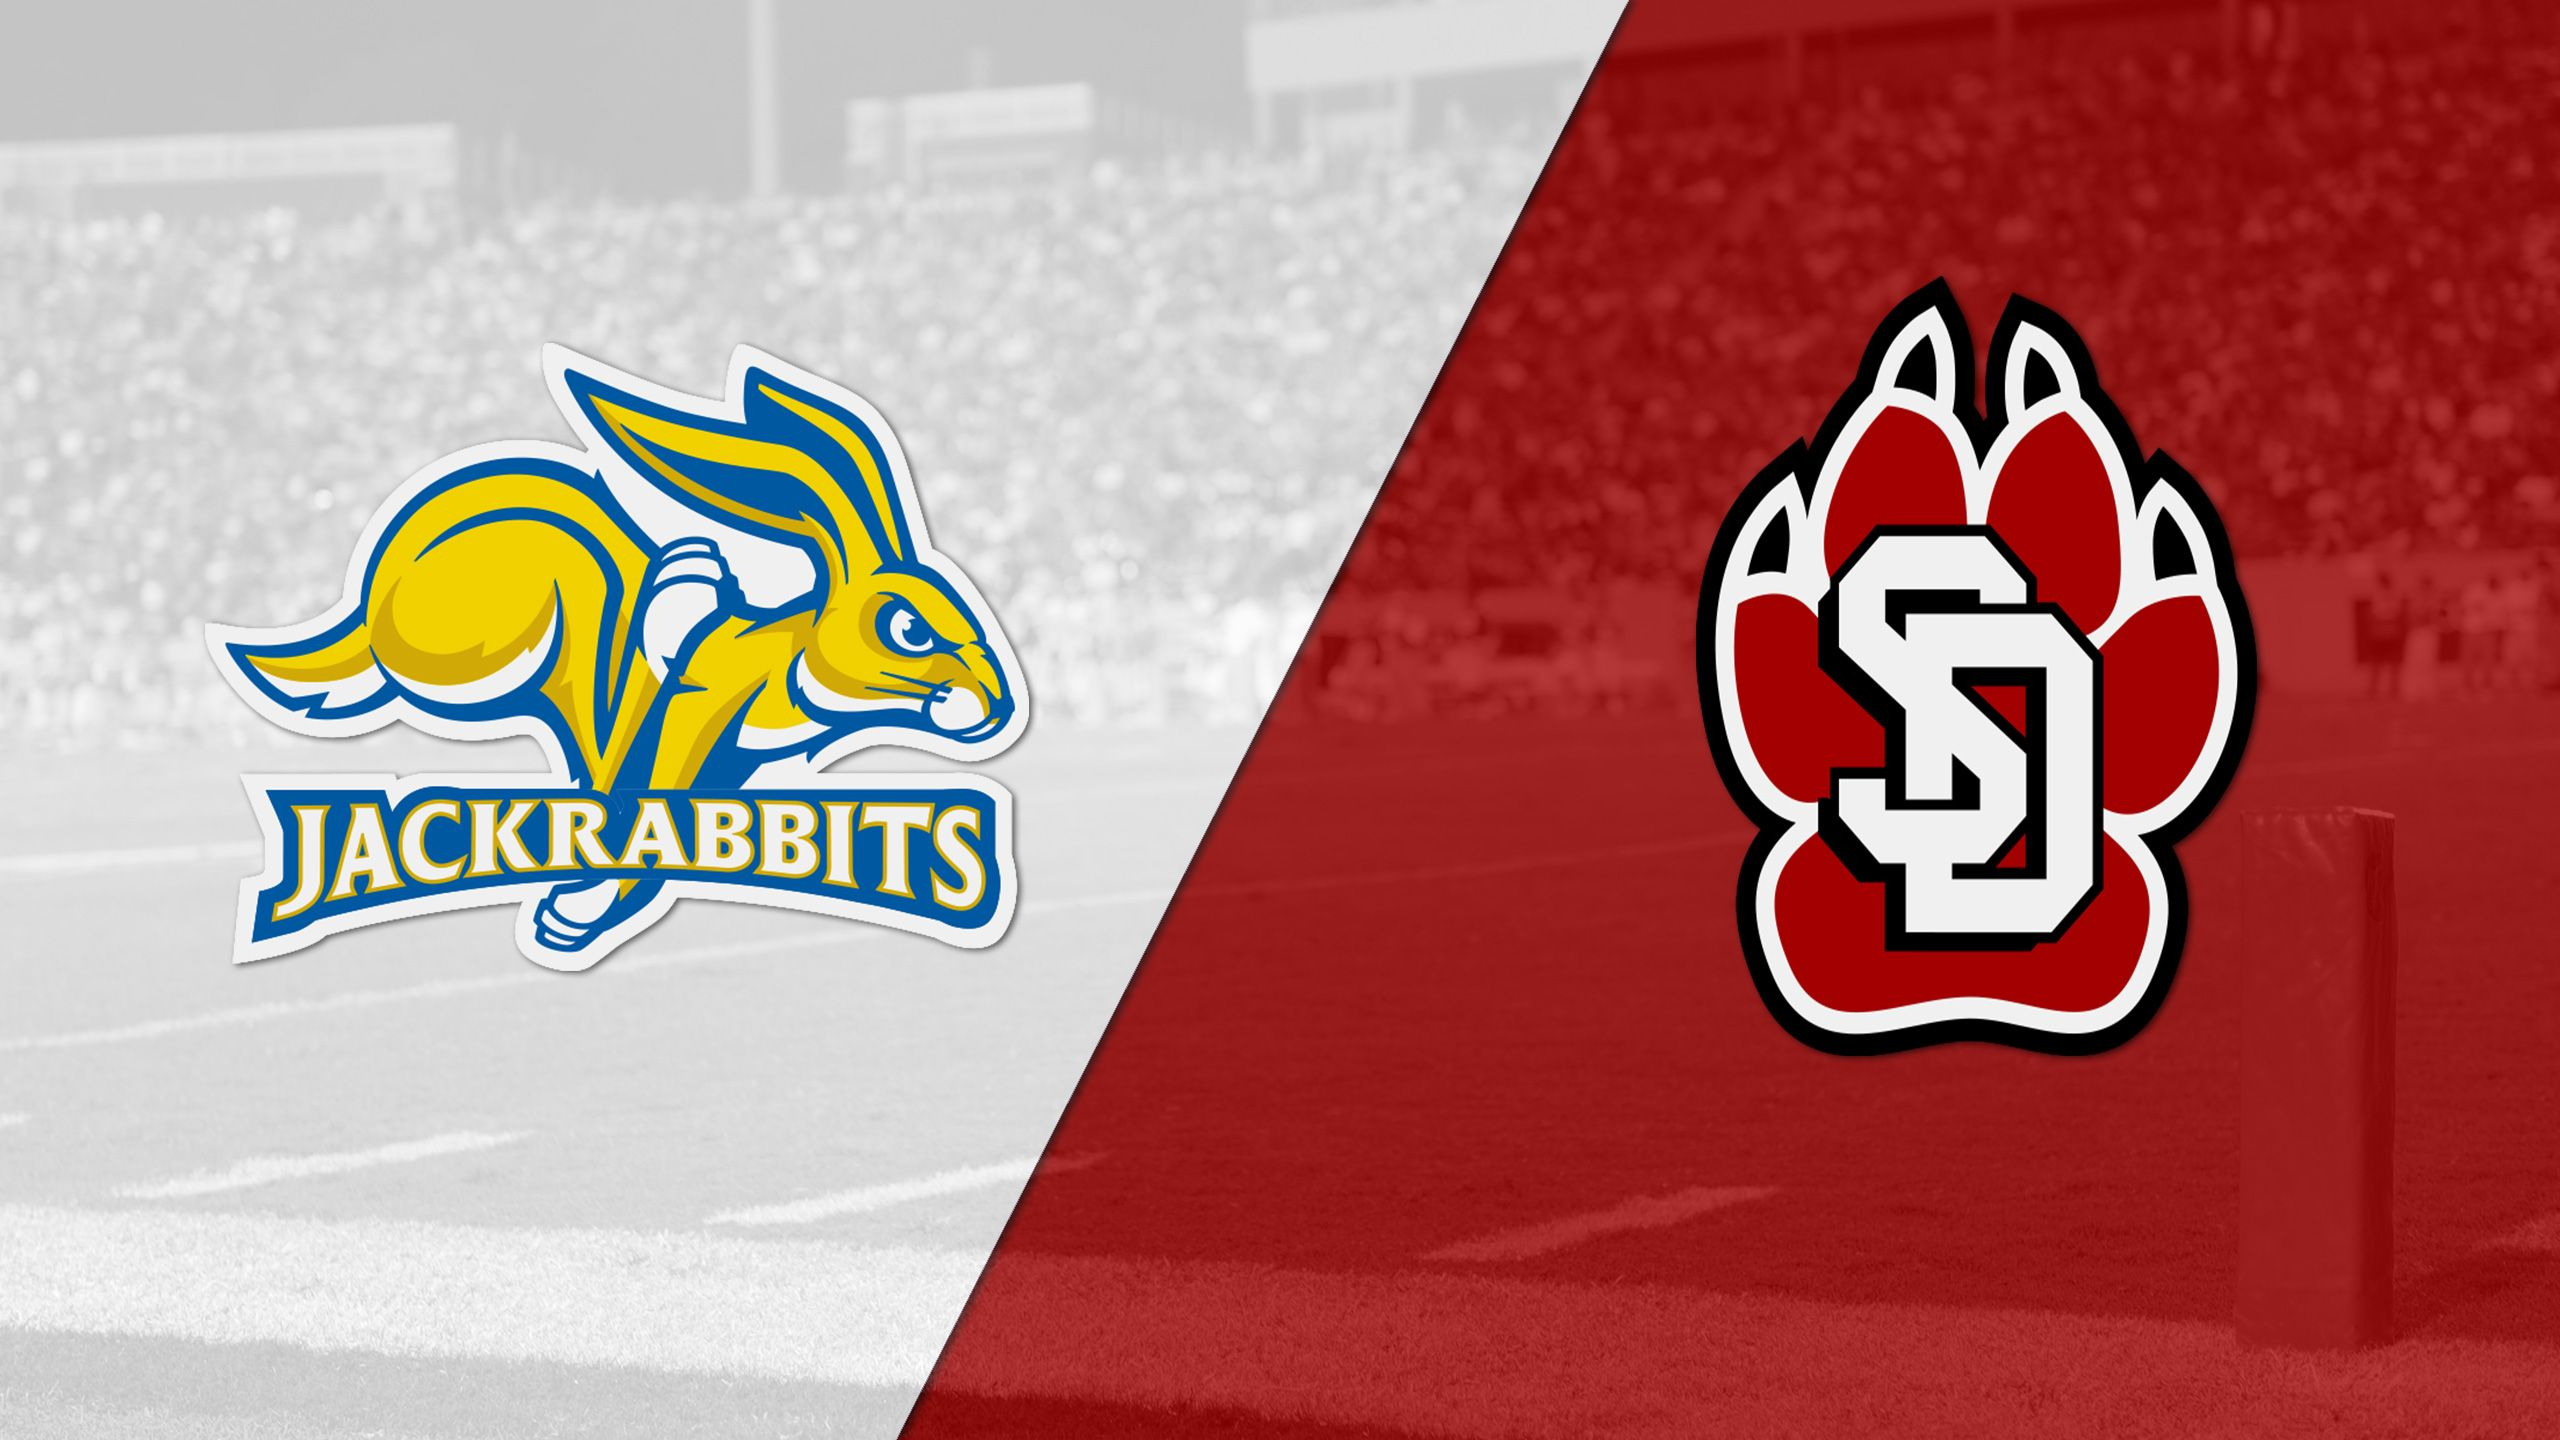 South Dakota State vs. South Dakota (Football)